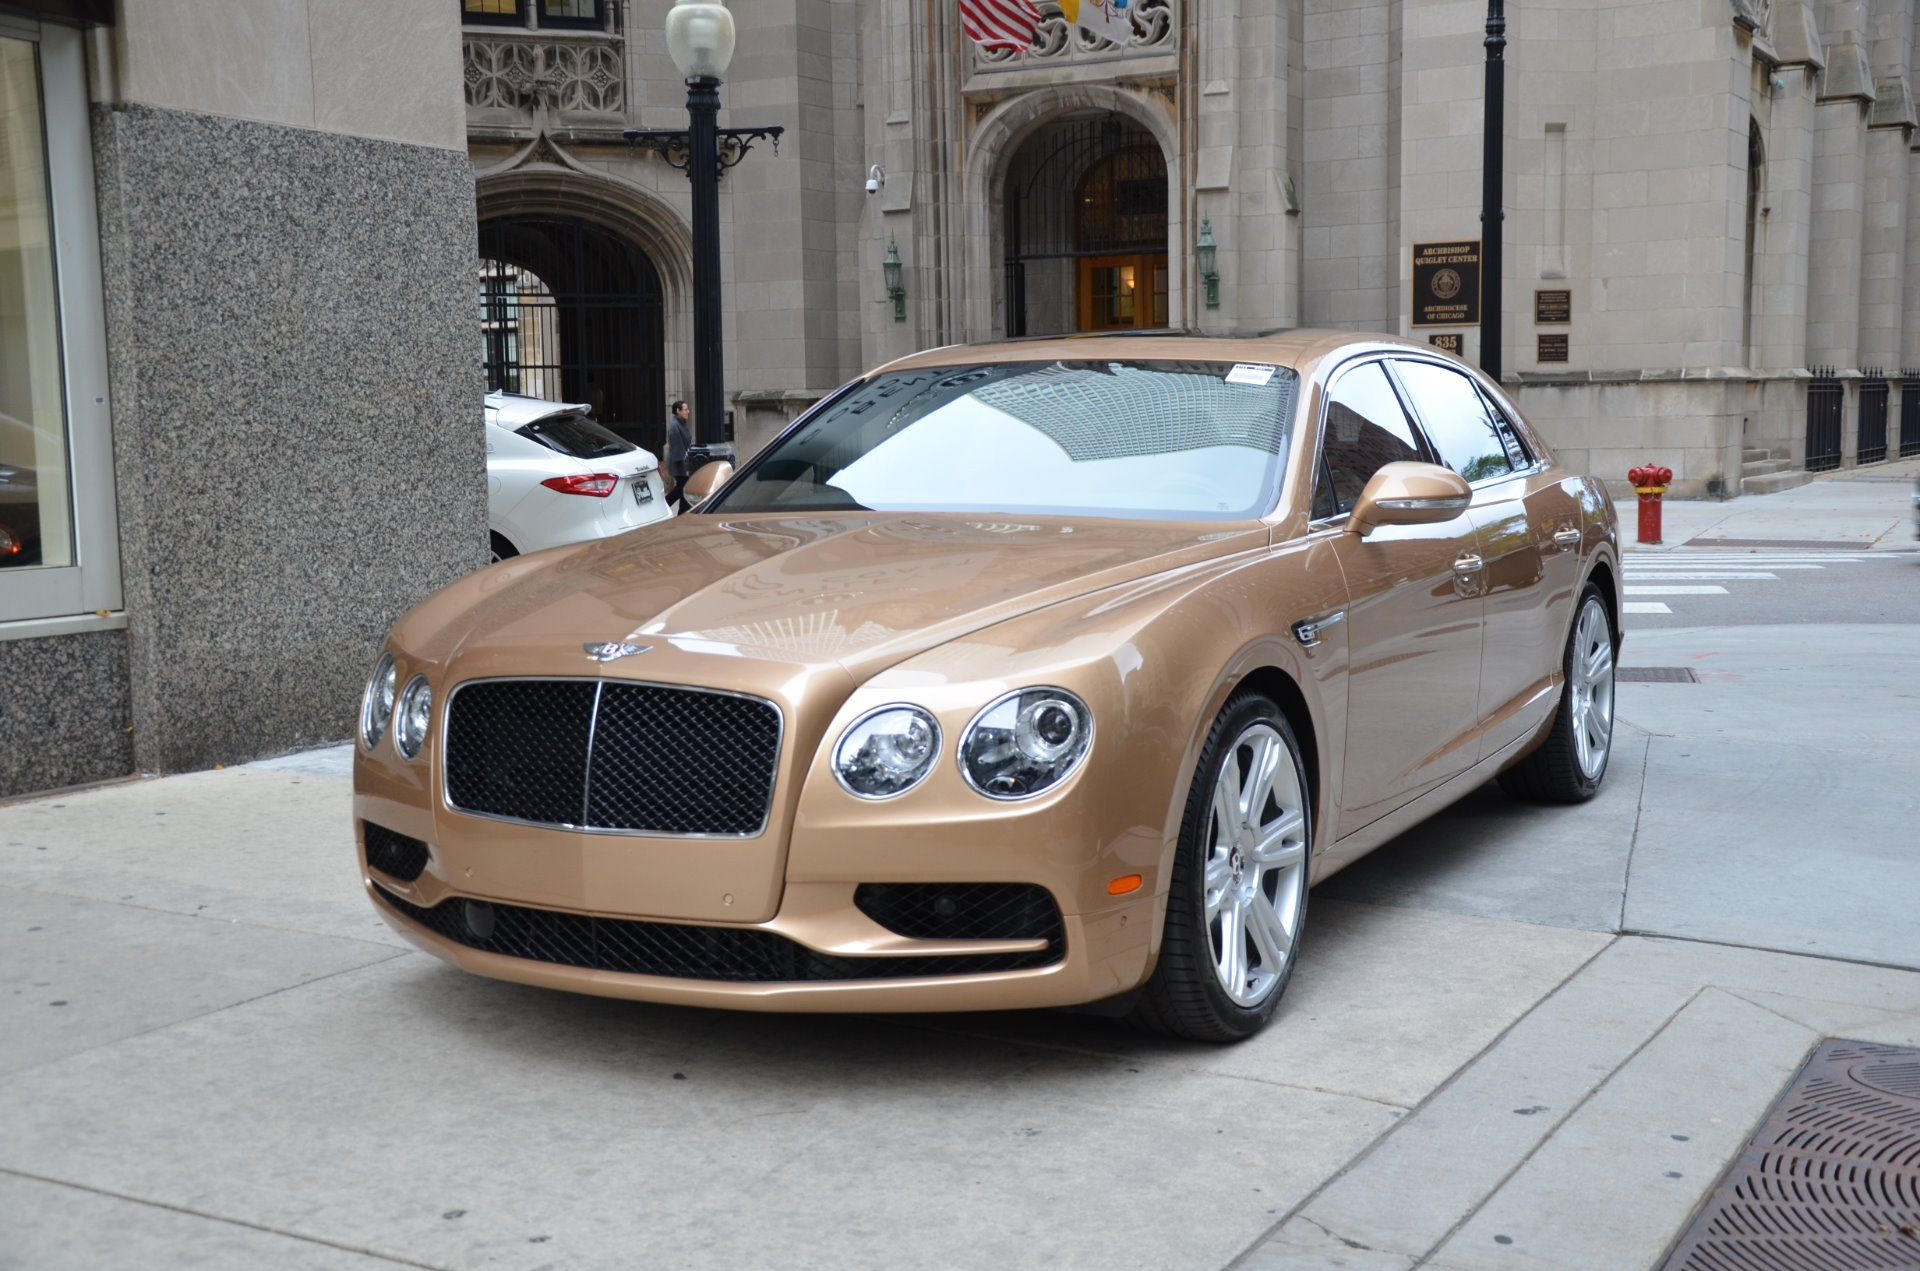 2017 Bentley Flying Spur V8 S Stock B991 for sale near